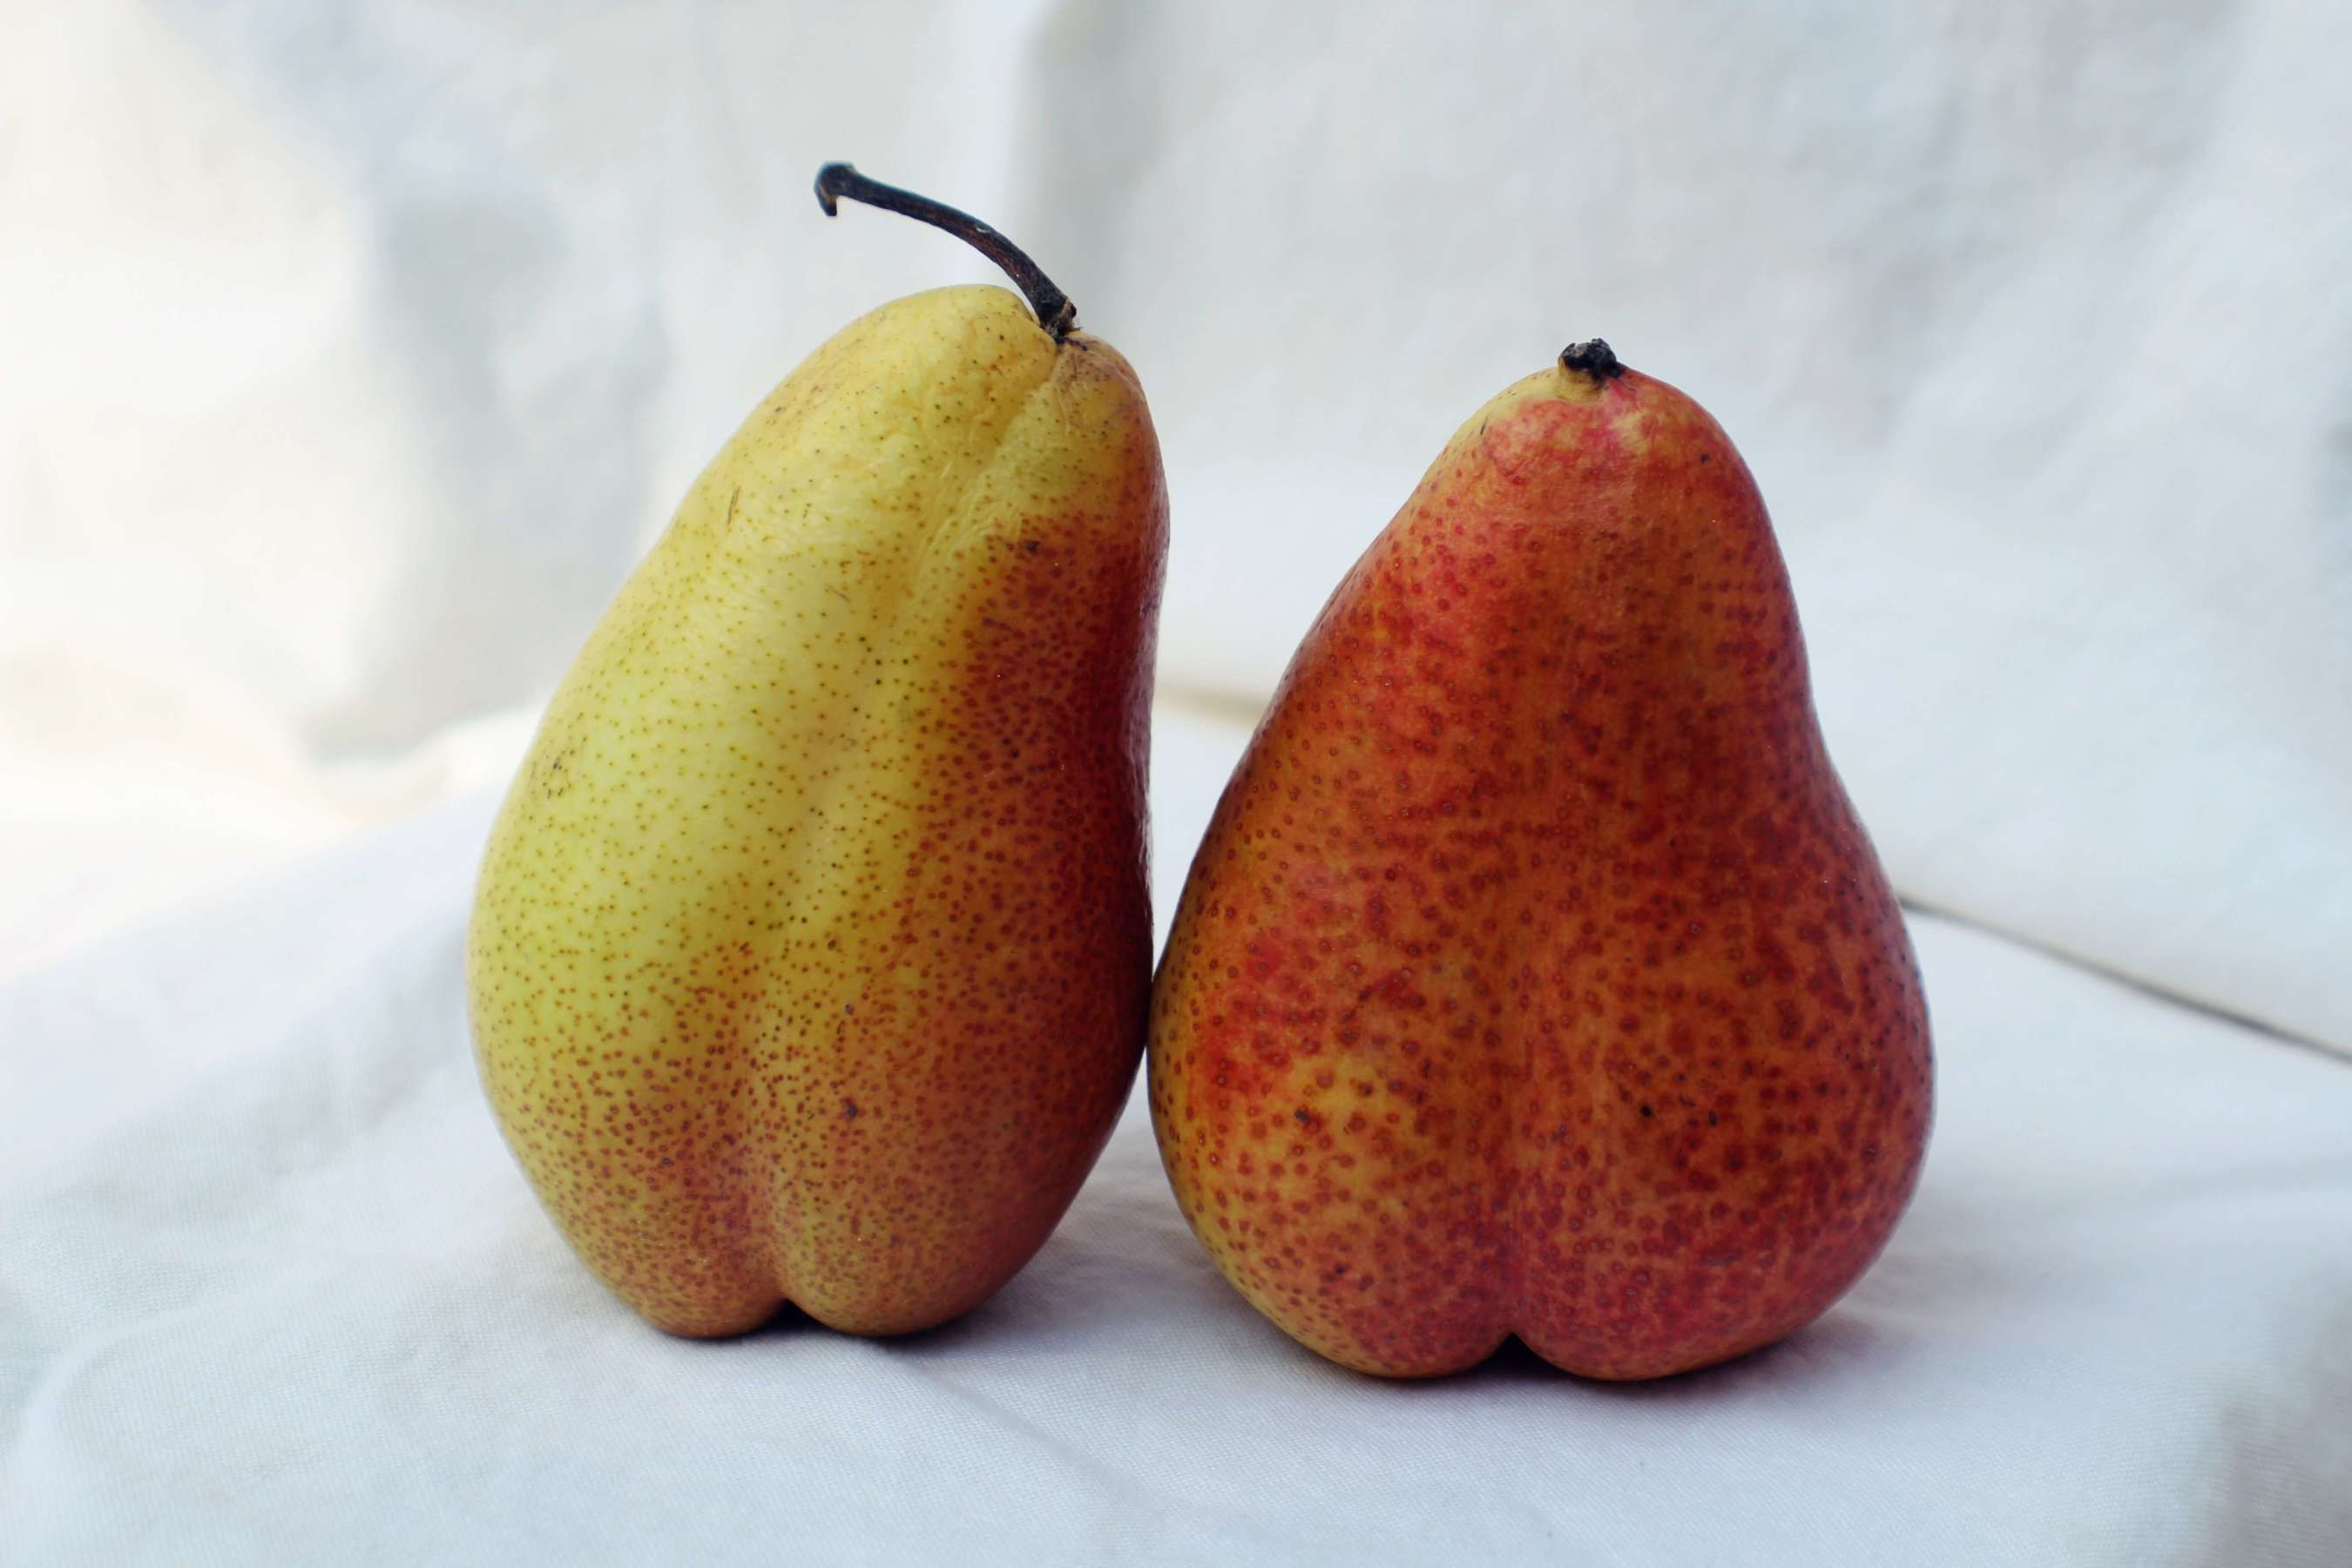 Two yellow pears sitting on a white textured background